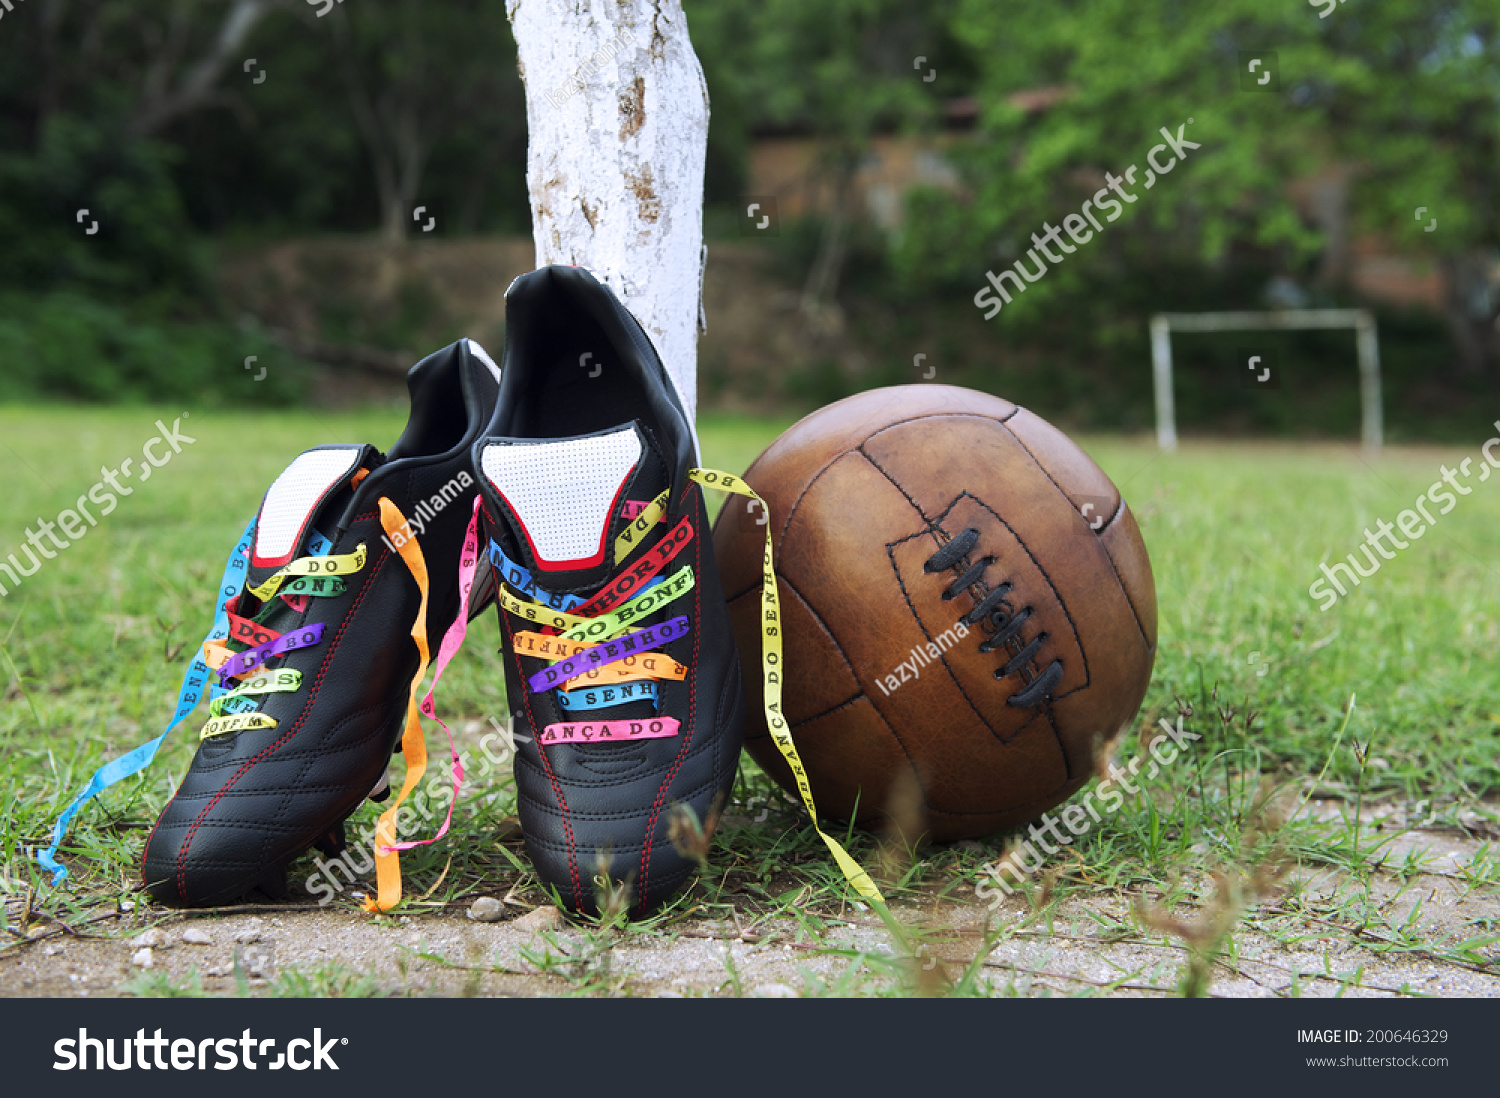 low priced 3bbca 14f6d Good luck soccer football boots soccer cleats laced with Brazilian wish  ribbons on rustic dirt grass